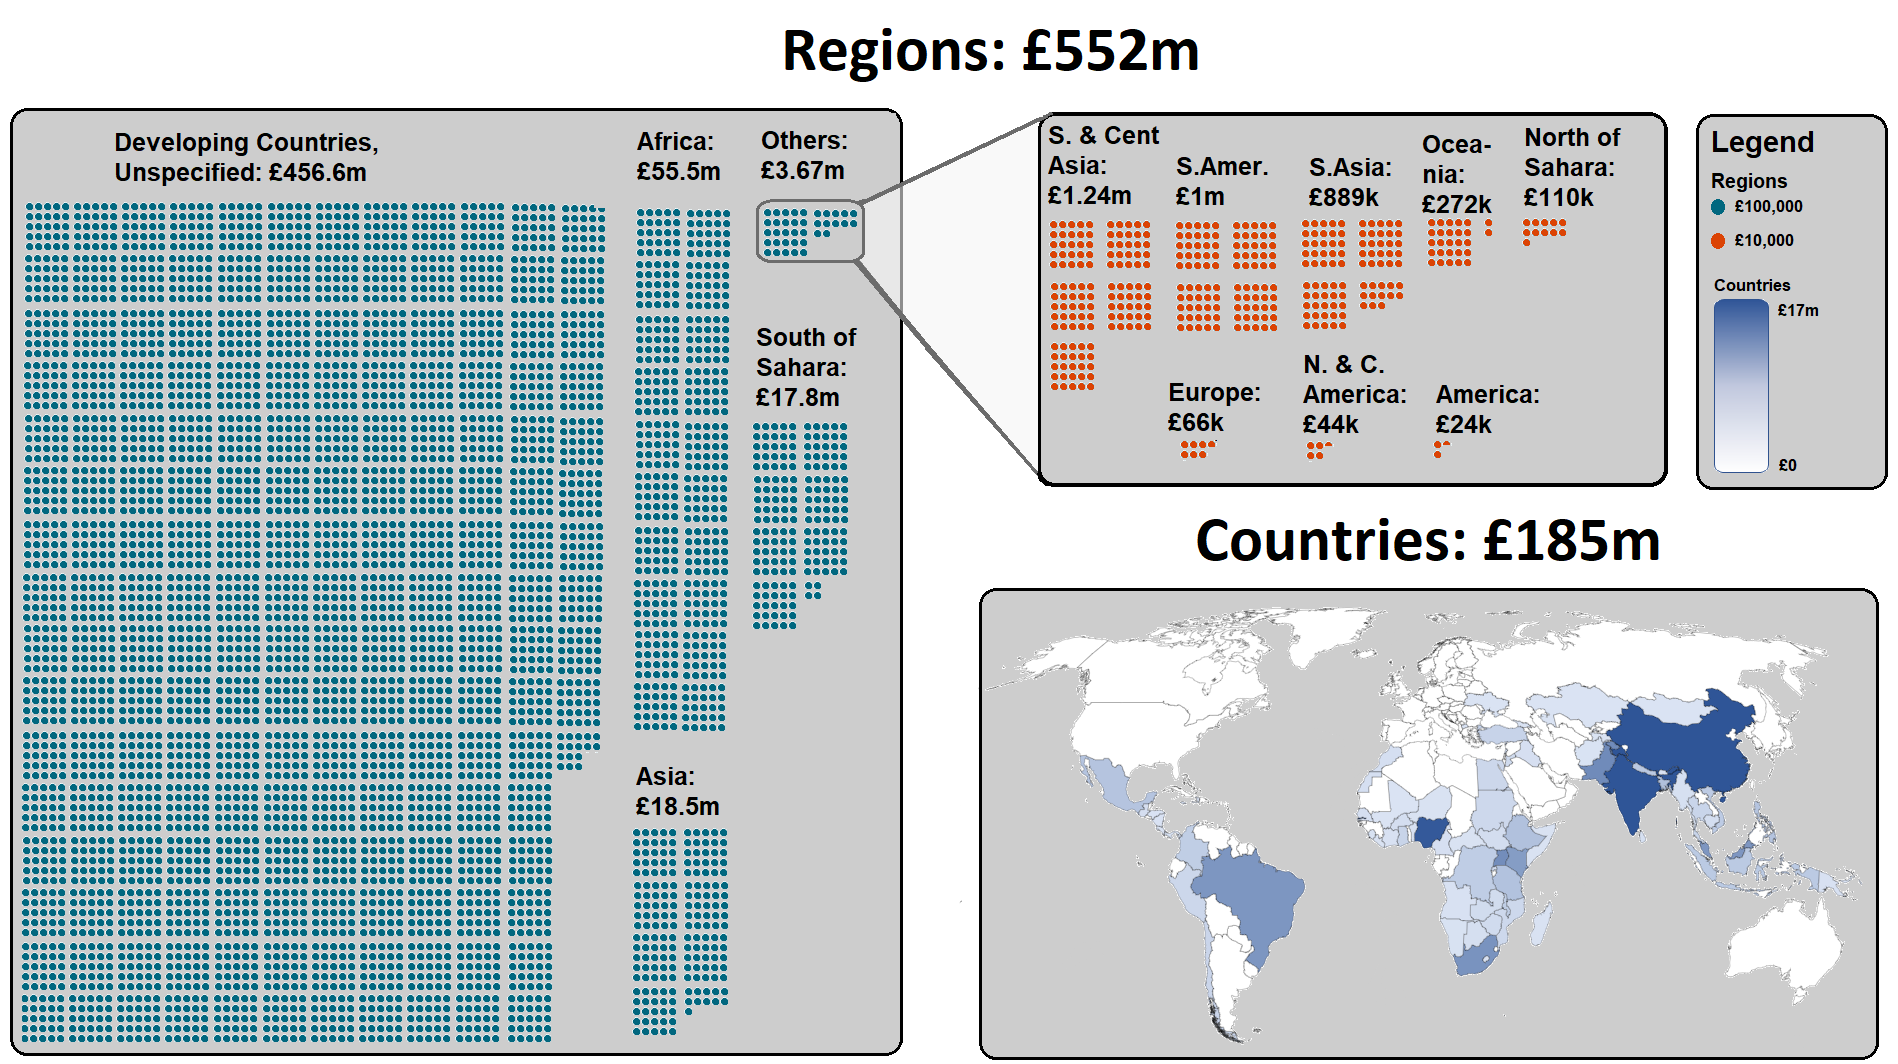 Visualization breaking down where most aid goes